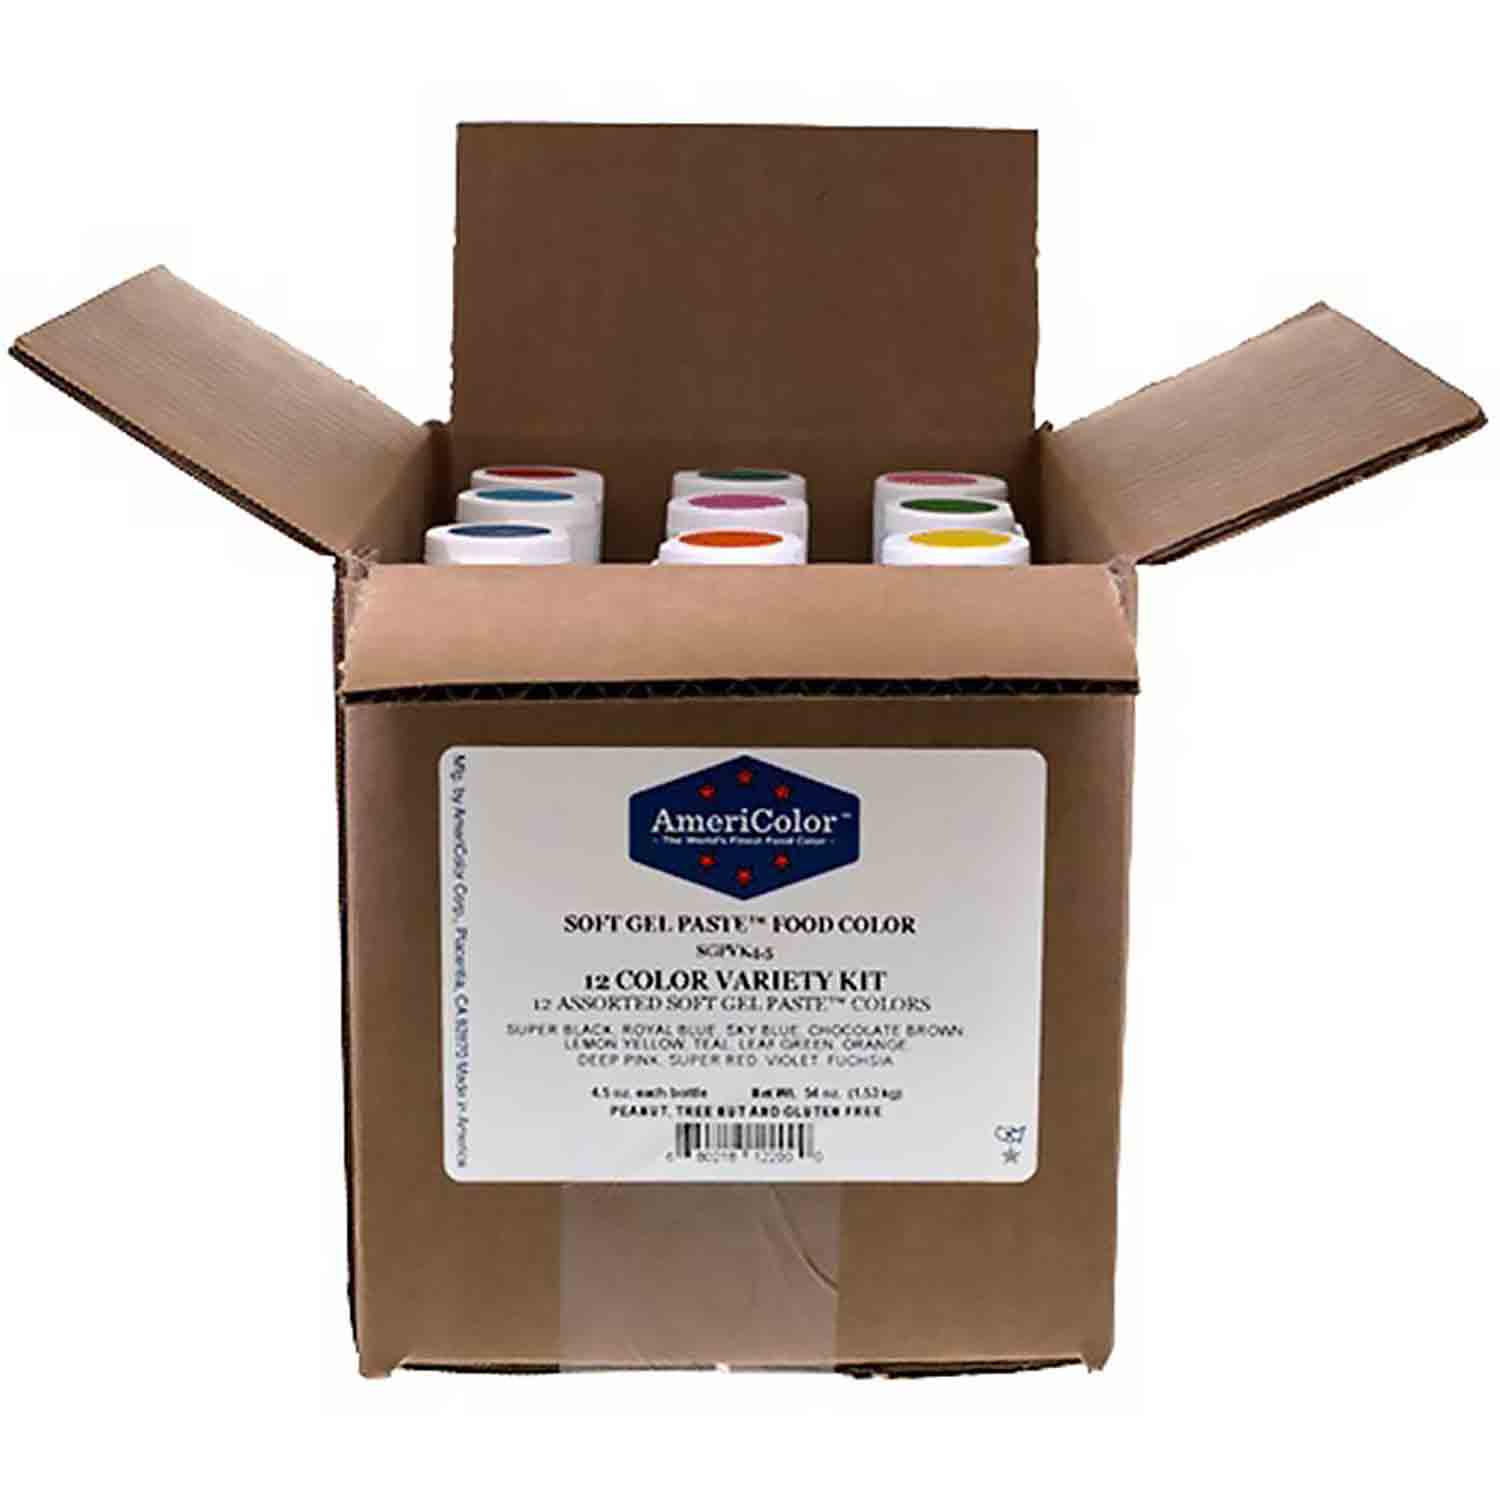 12 Color Variety Soft Gel Paste™ Food Color Kit